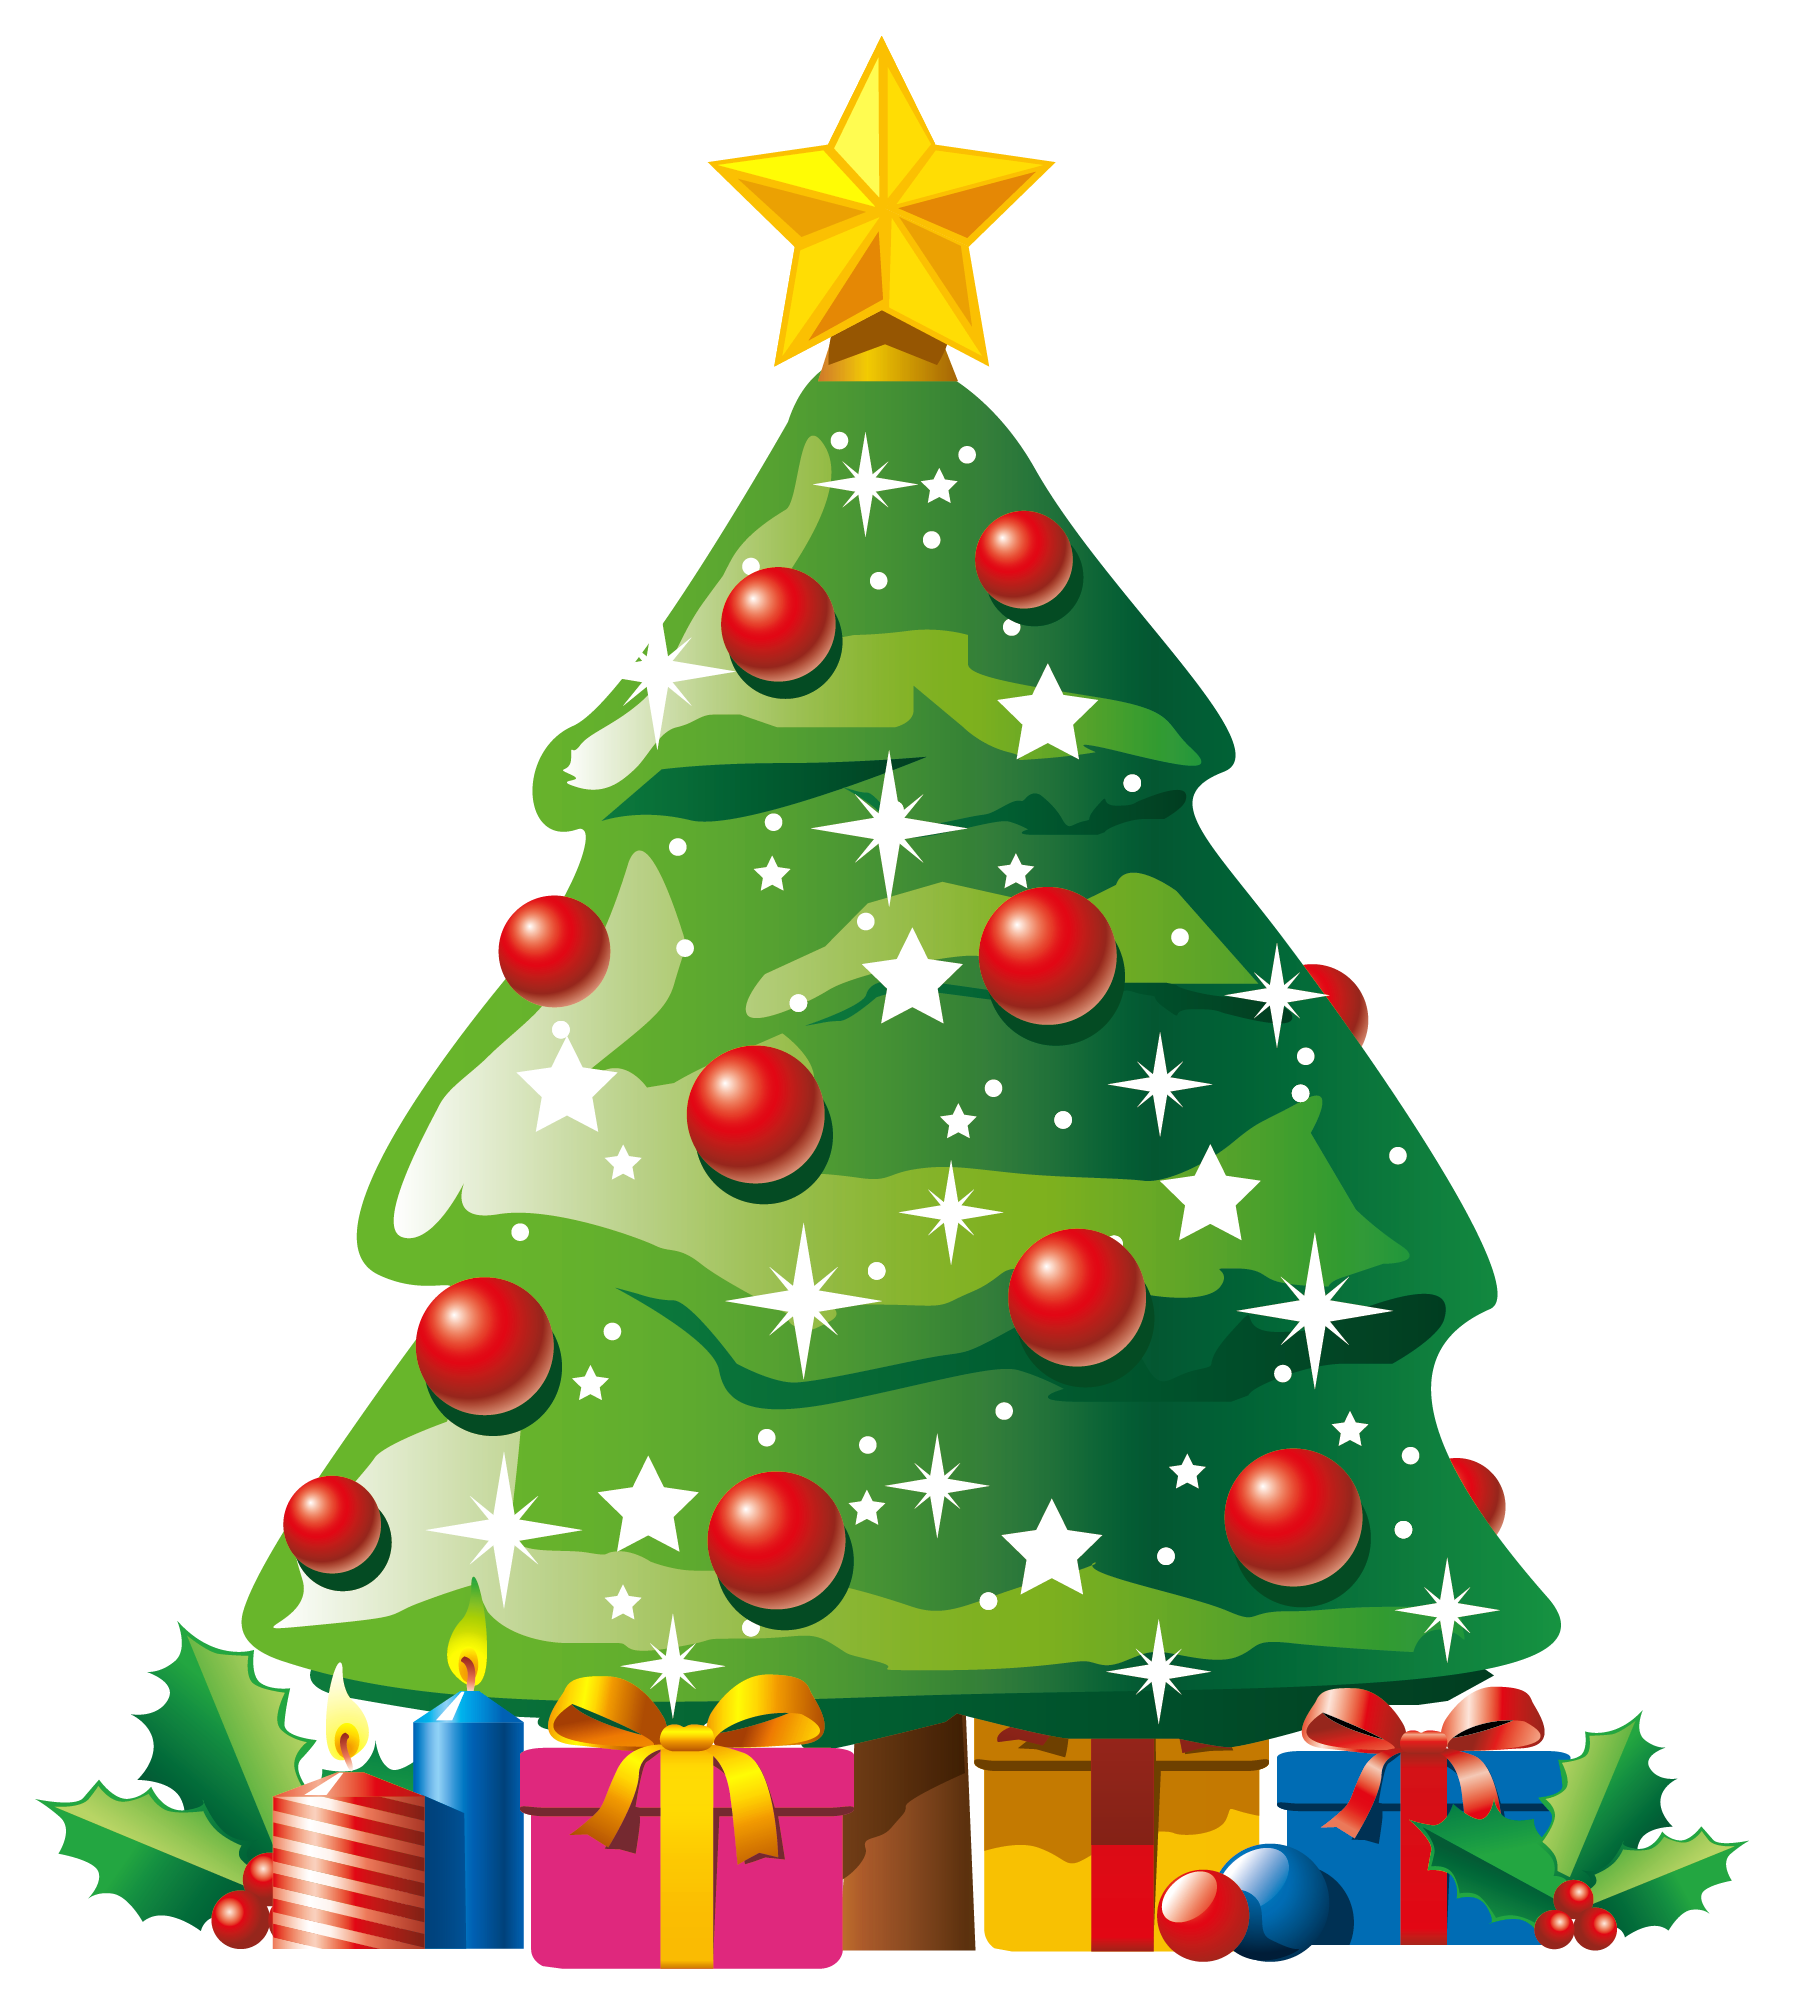 Christmas trees clipart free clip free download Christmas Tree Clipart Free at GetDrawings.com | Free for personal ... clip free download